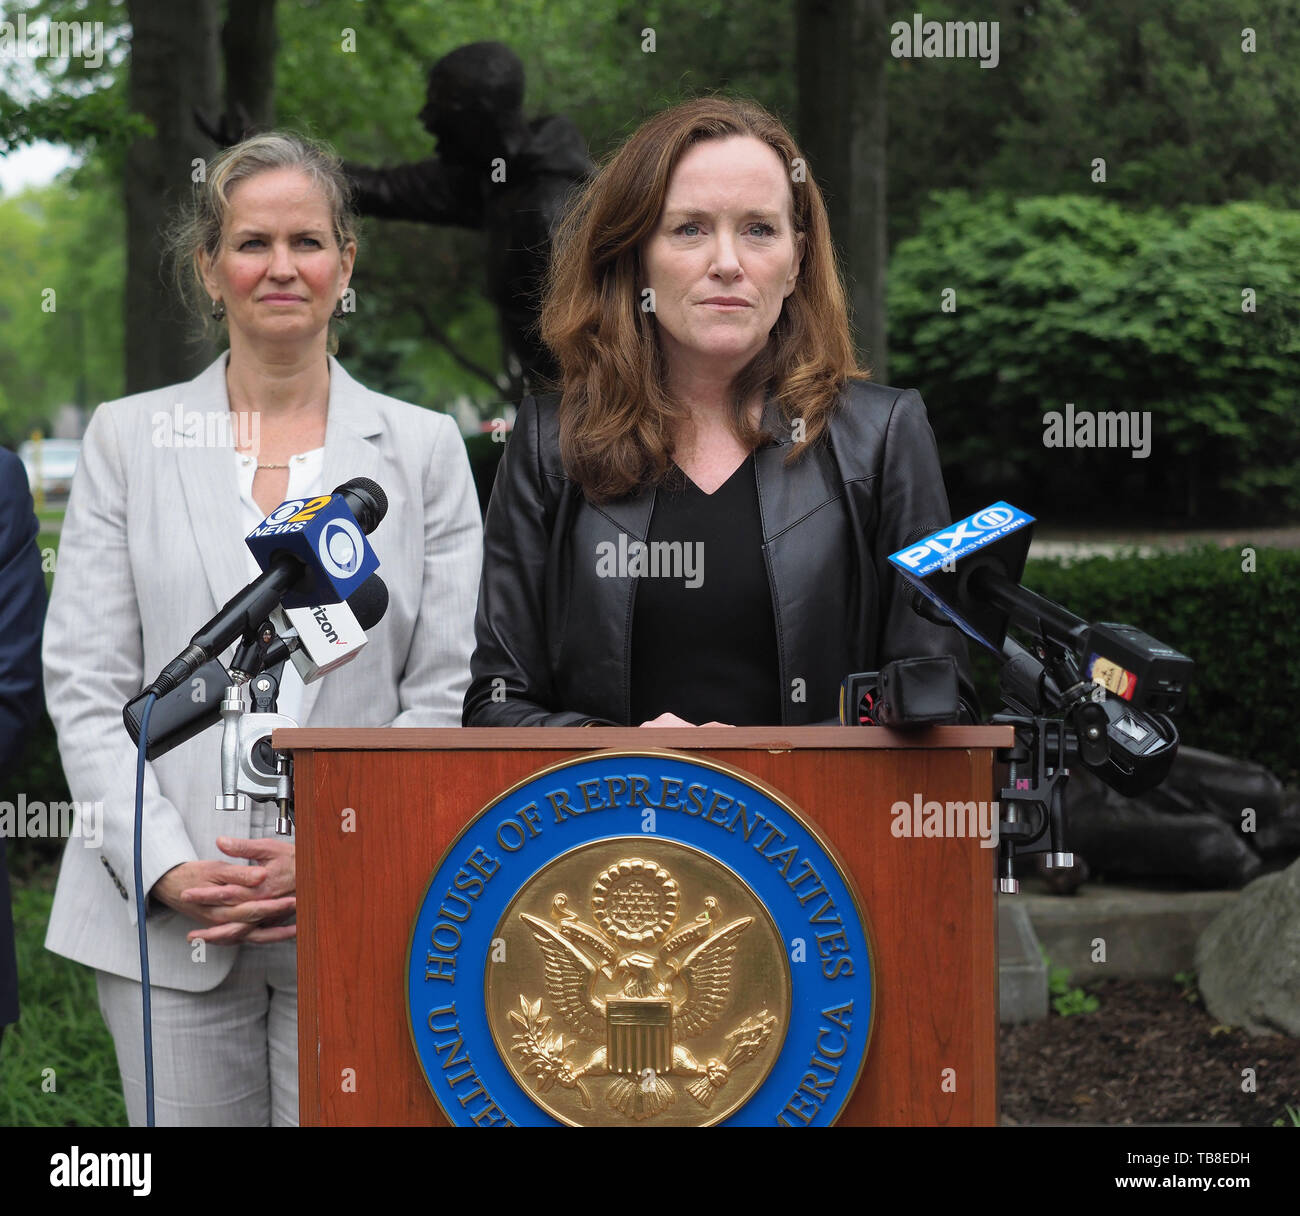 Hempstead, New York, USA. 30th May, 2019. At podium, U.S. Representative KATHLEEN RICE (NY-04) has a serious expression as she holds a press conference to announce she's introducing Three Bills to Congress to combat Impaired and distracted Driving, and at left is Nassau County Executive LAURA CURRAN, who thanked Rep. Rice for her safe driving legislation. Congresswoman Rice announced the package of 3 bills - End Drunk Driving Act, the Prevent Impaired Driving Child Endangerment Act, and the Distracted Driving Education Act of 2019 - at the Drunk Driving Victims Memorial in Eisenhower - Stock Image